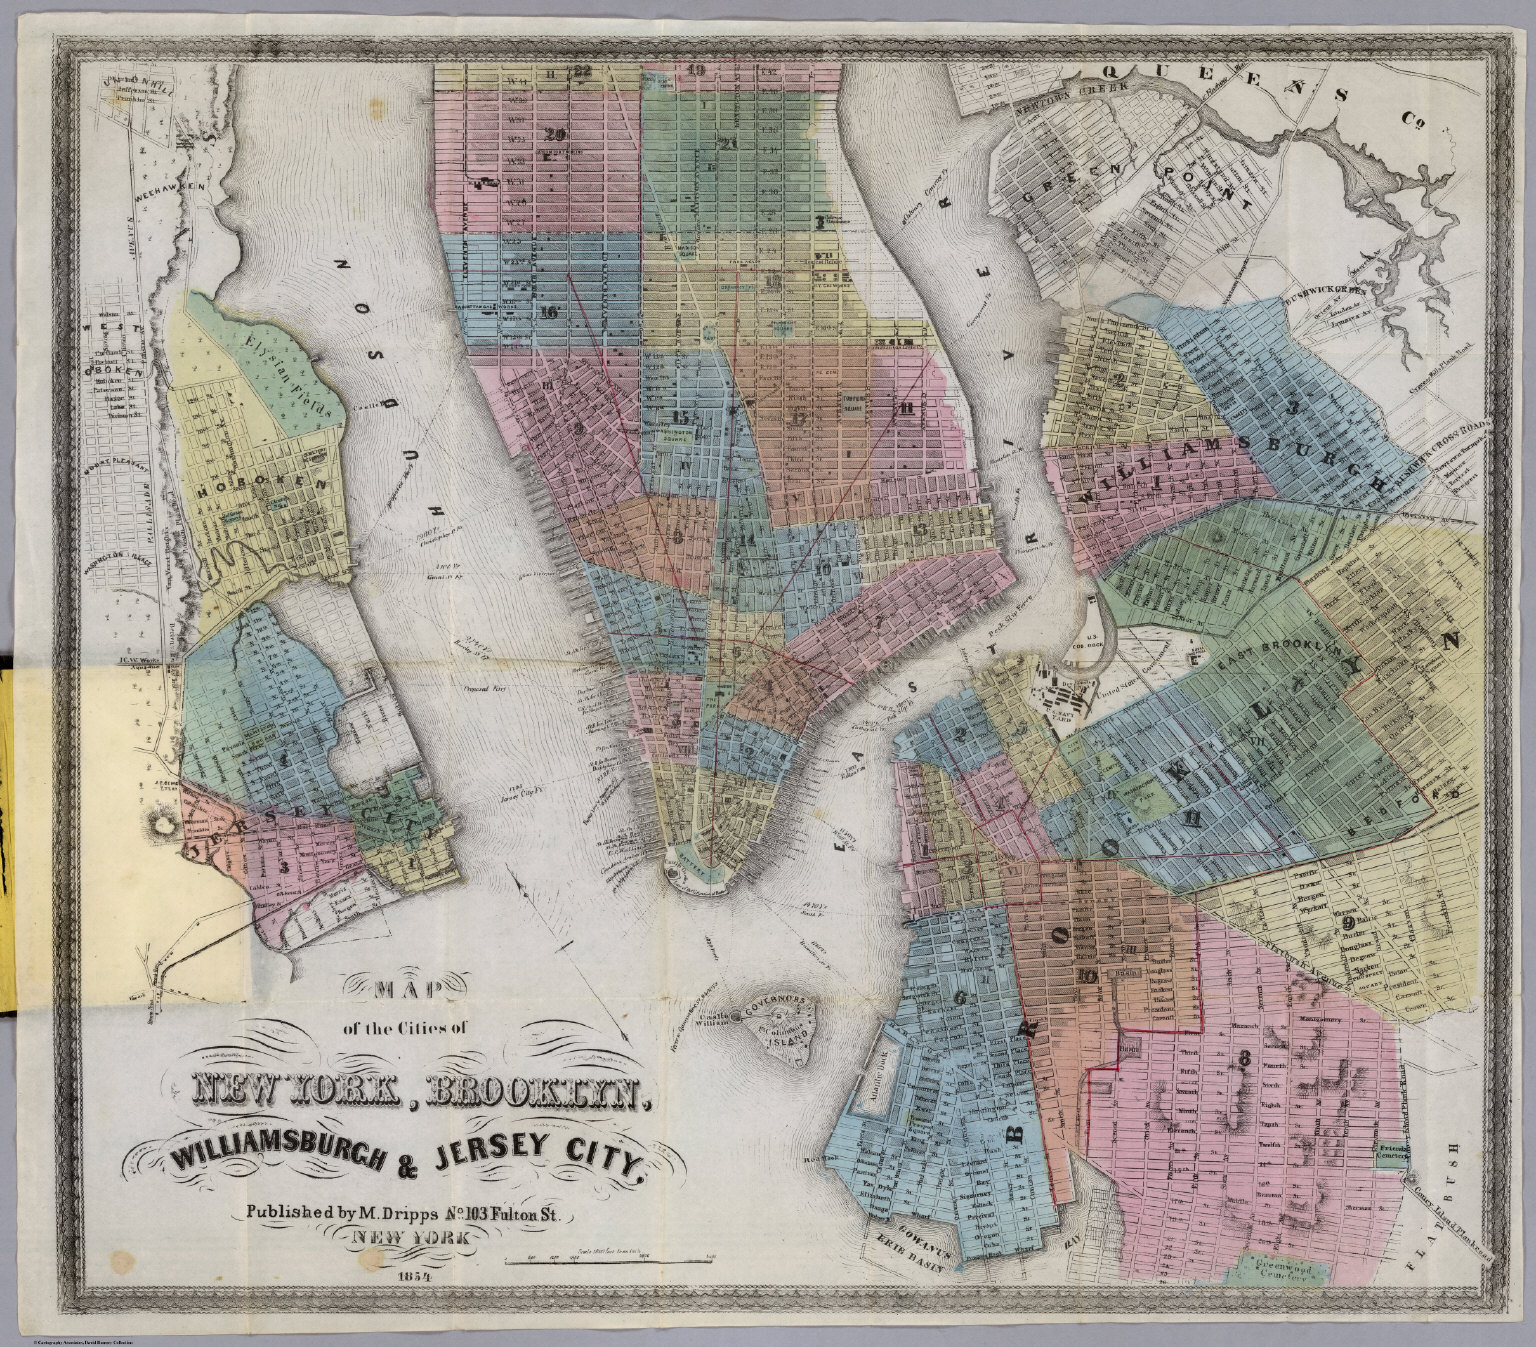 New York Brooklyn Williamsburgh Jersey City David Rumsey - Jersey city map